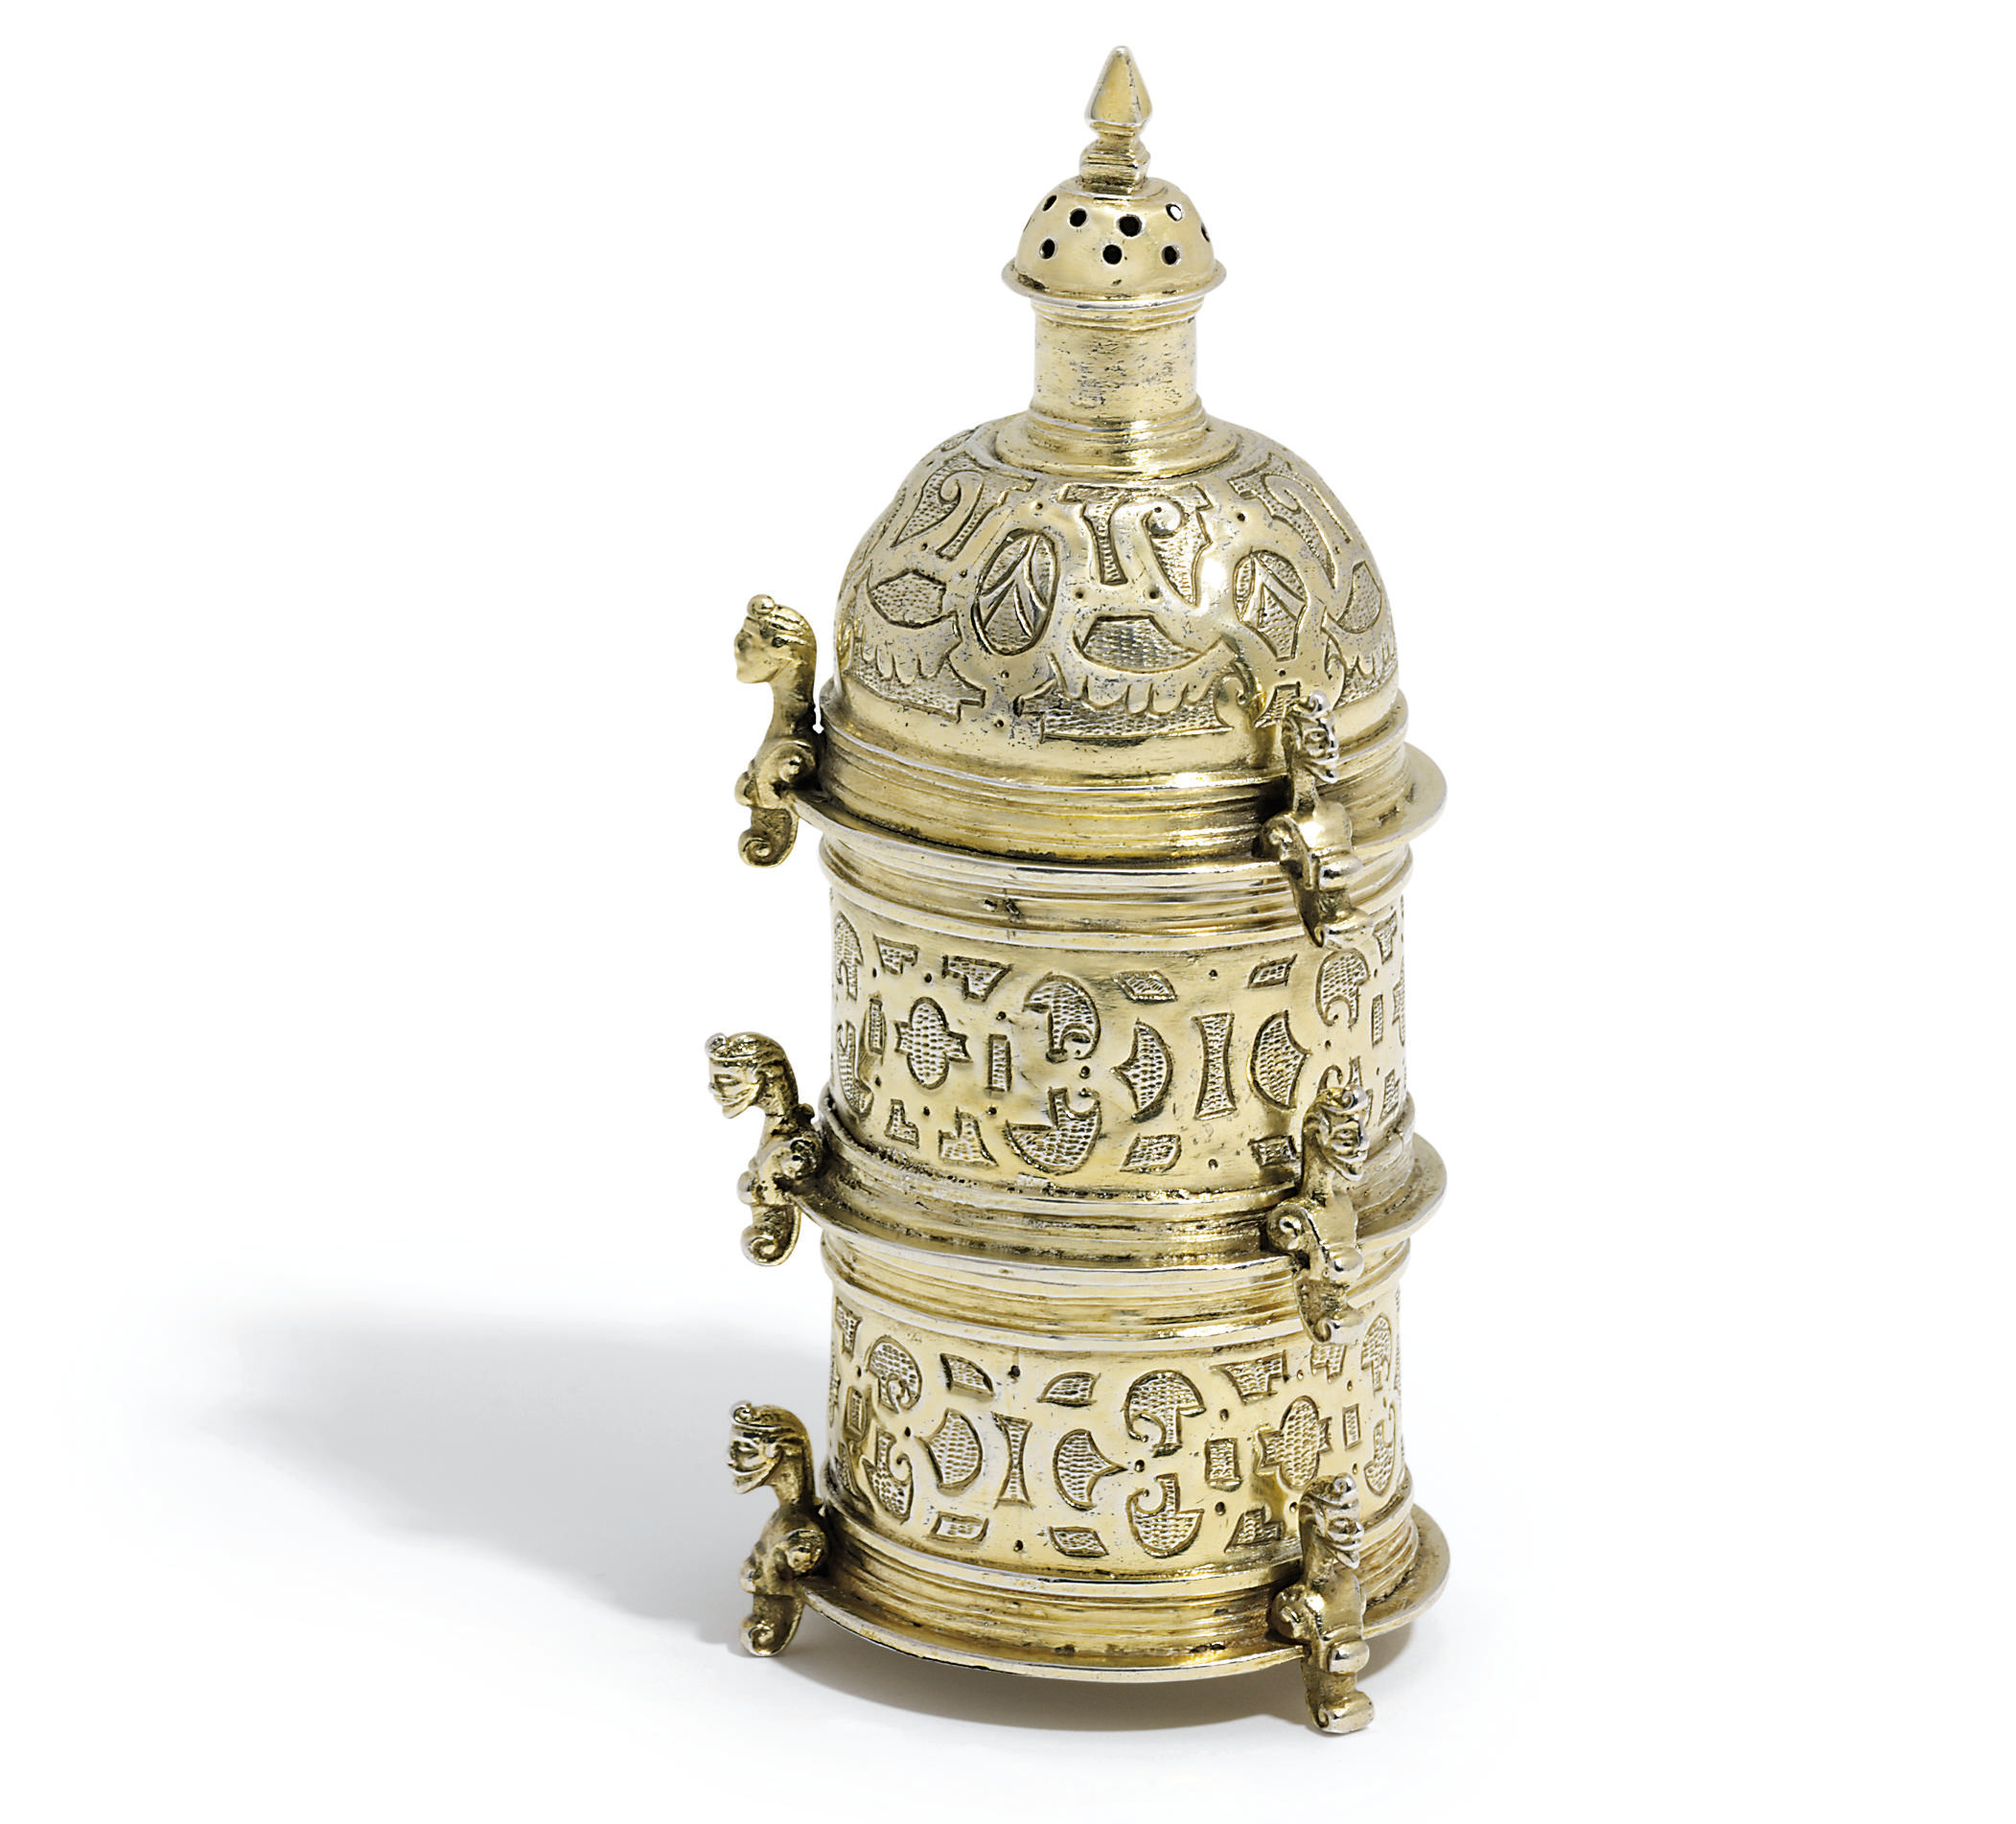 A SPANISH SILVER-GILT TABLE-SA